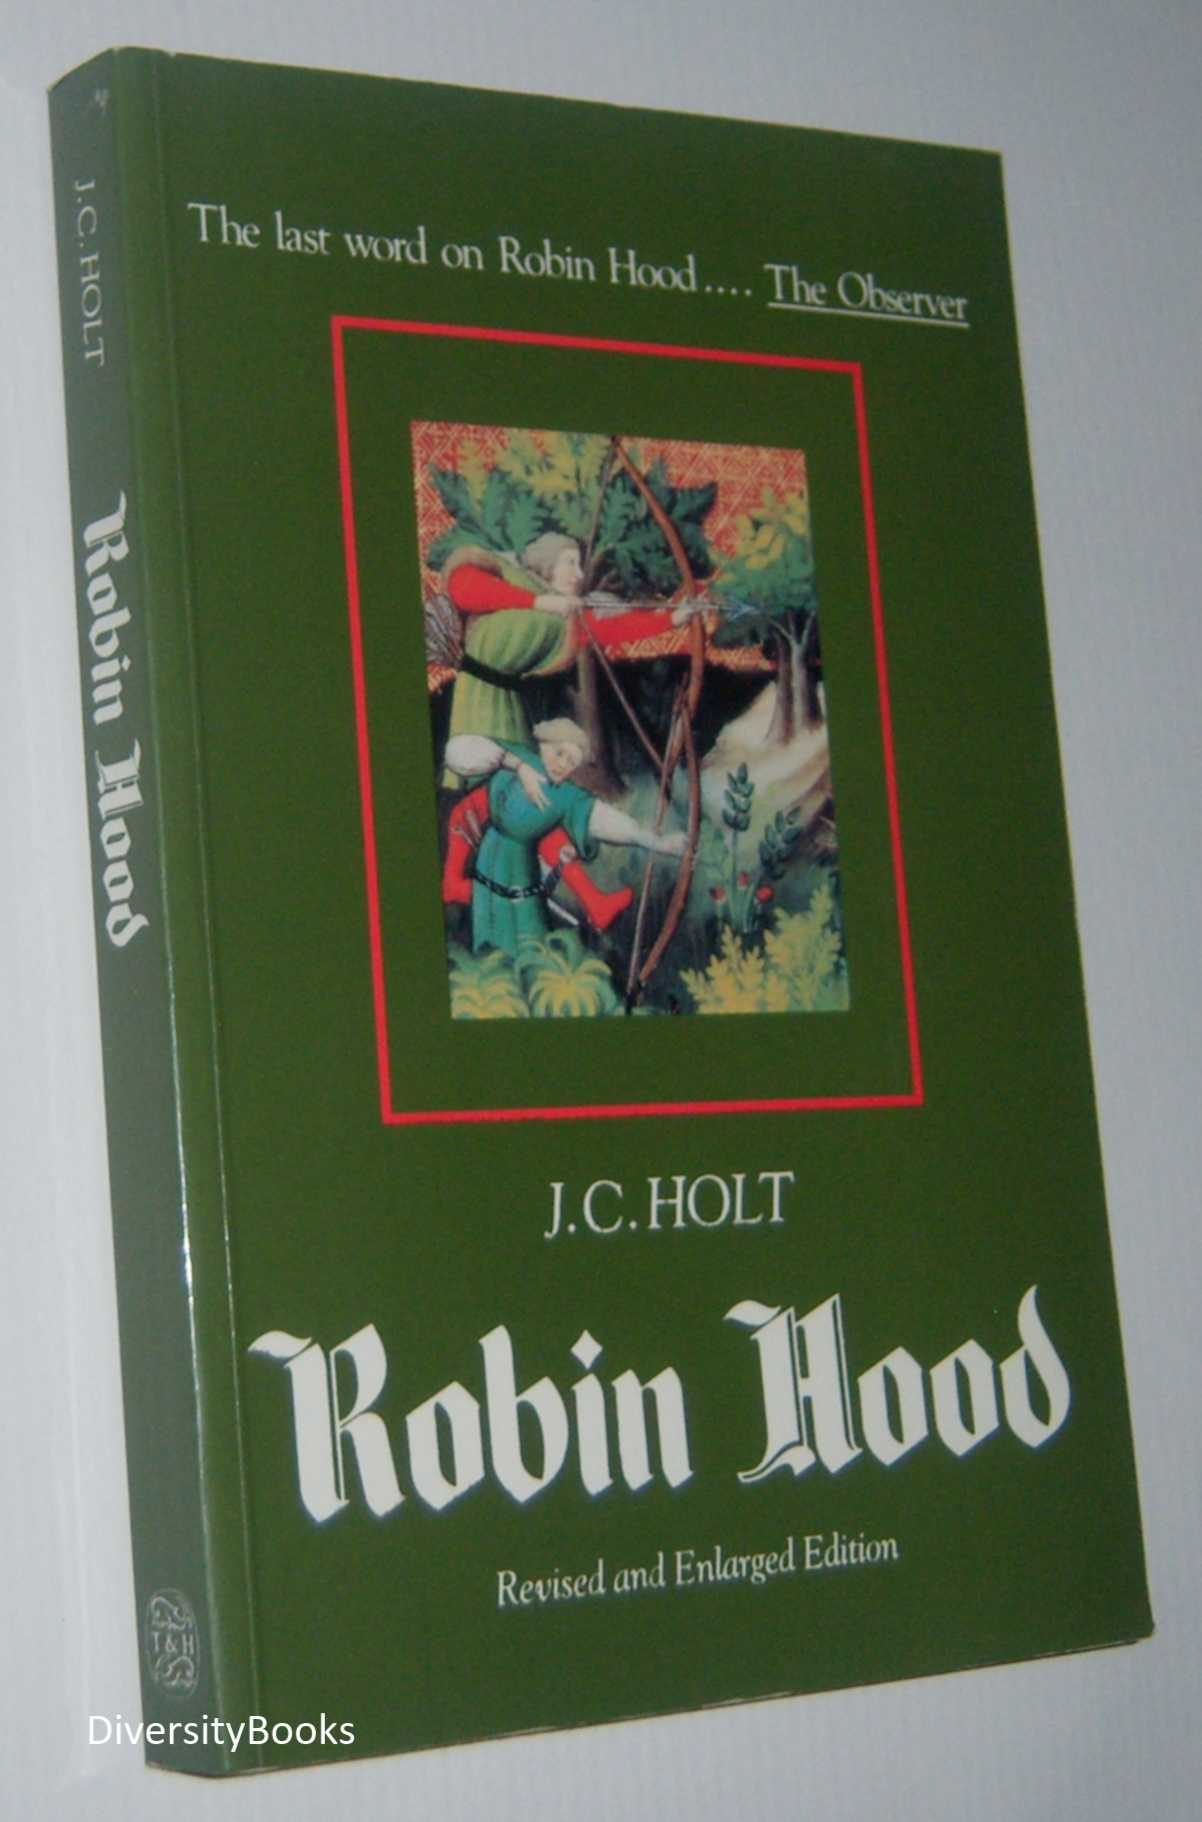 Image for ROBIN HOOD (Revised and Enlarged Edition)